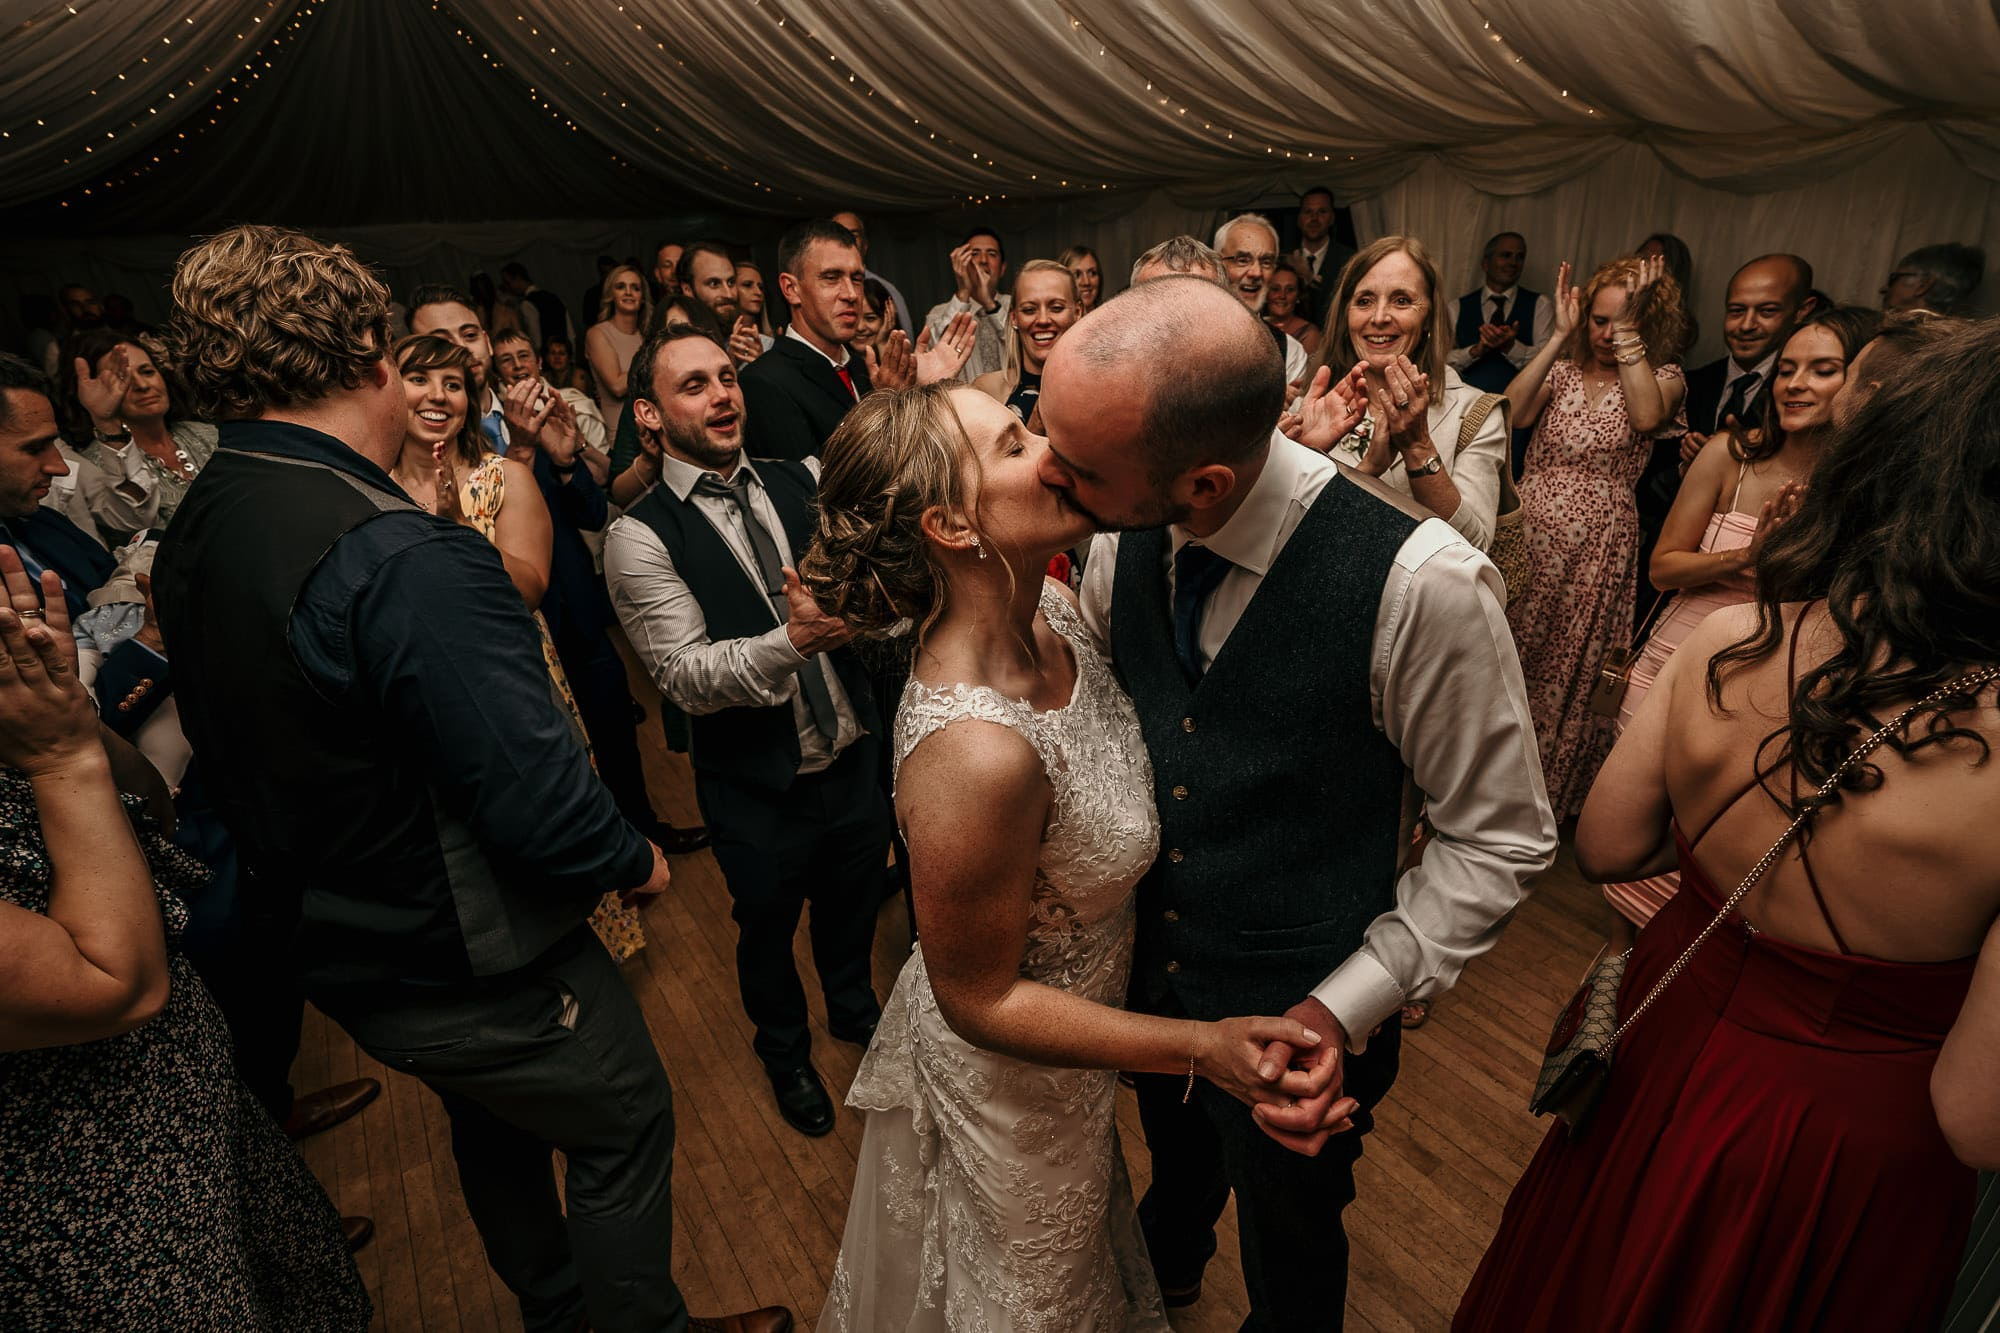 First dance at wedding in chesterfield